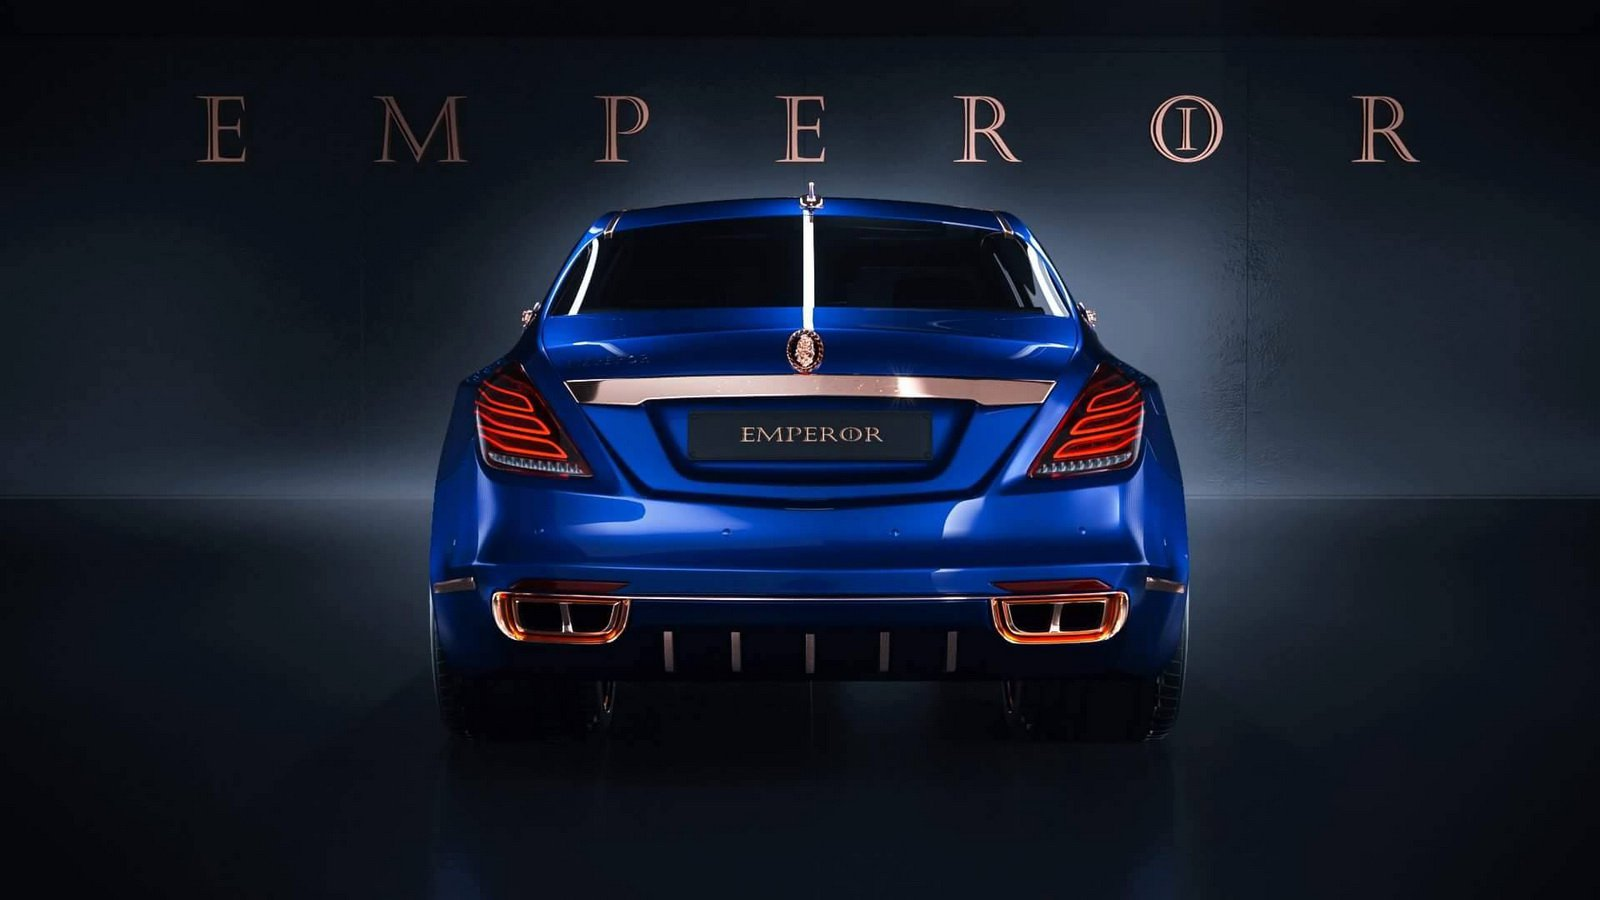 Mercedes-Maybach S600 Emperor I